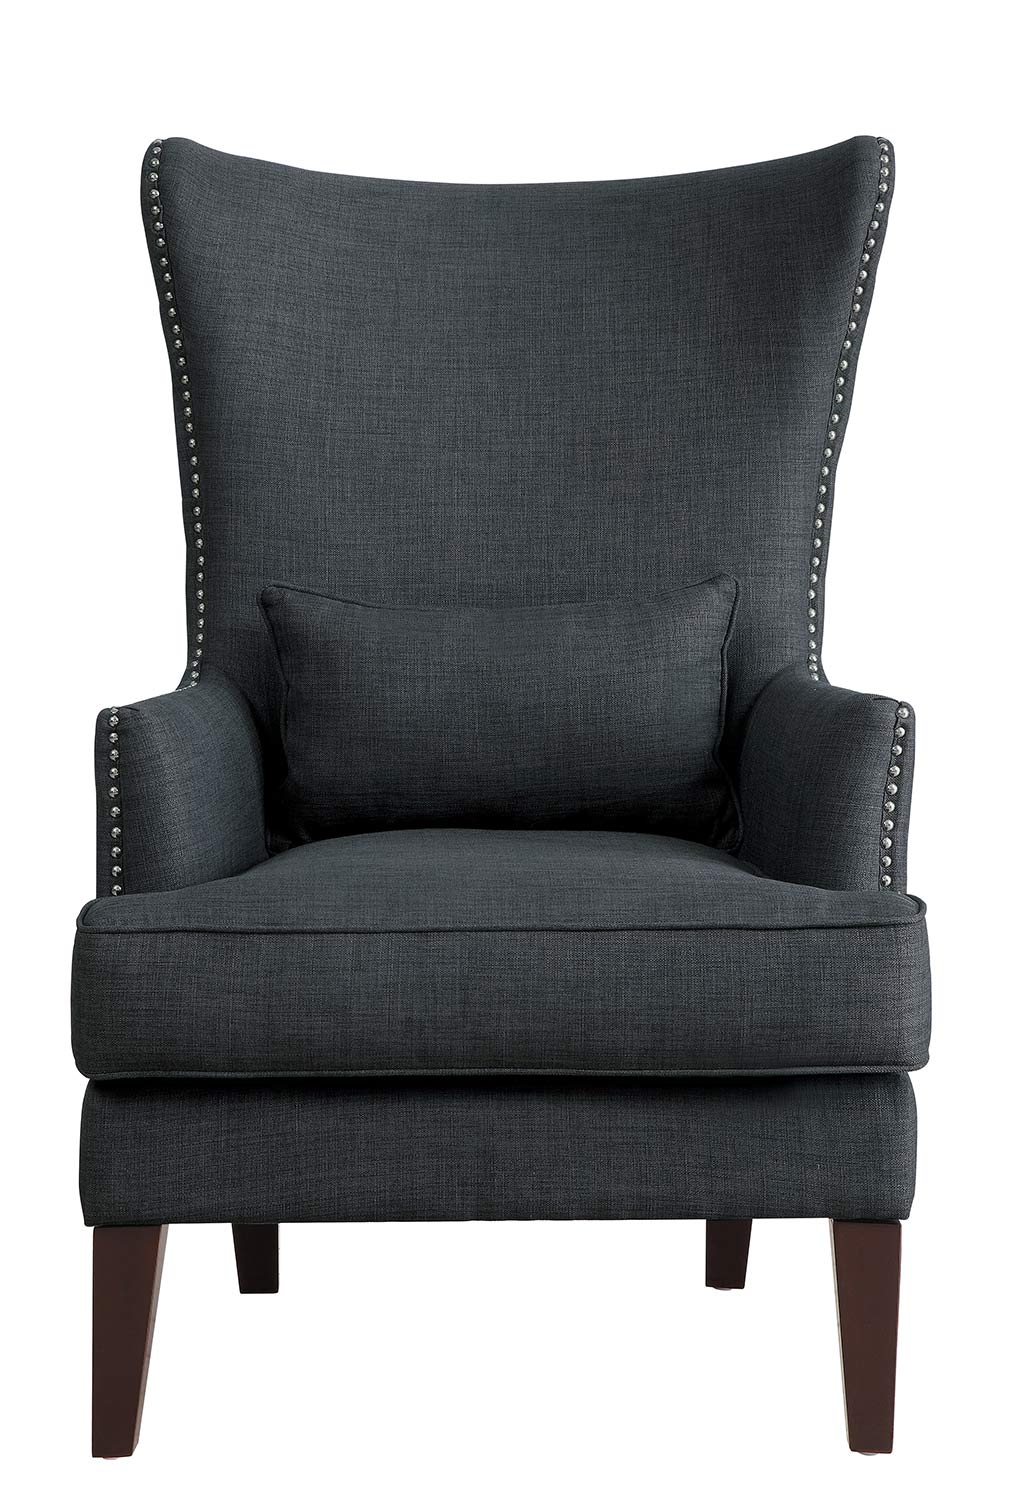 Homelegance Avina Accent Chair - Charcoal